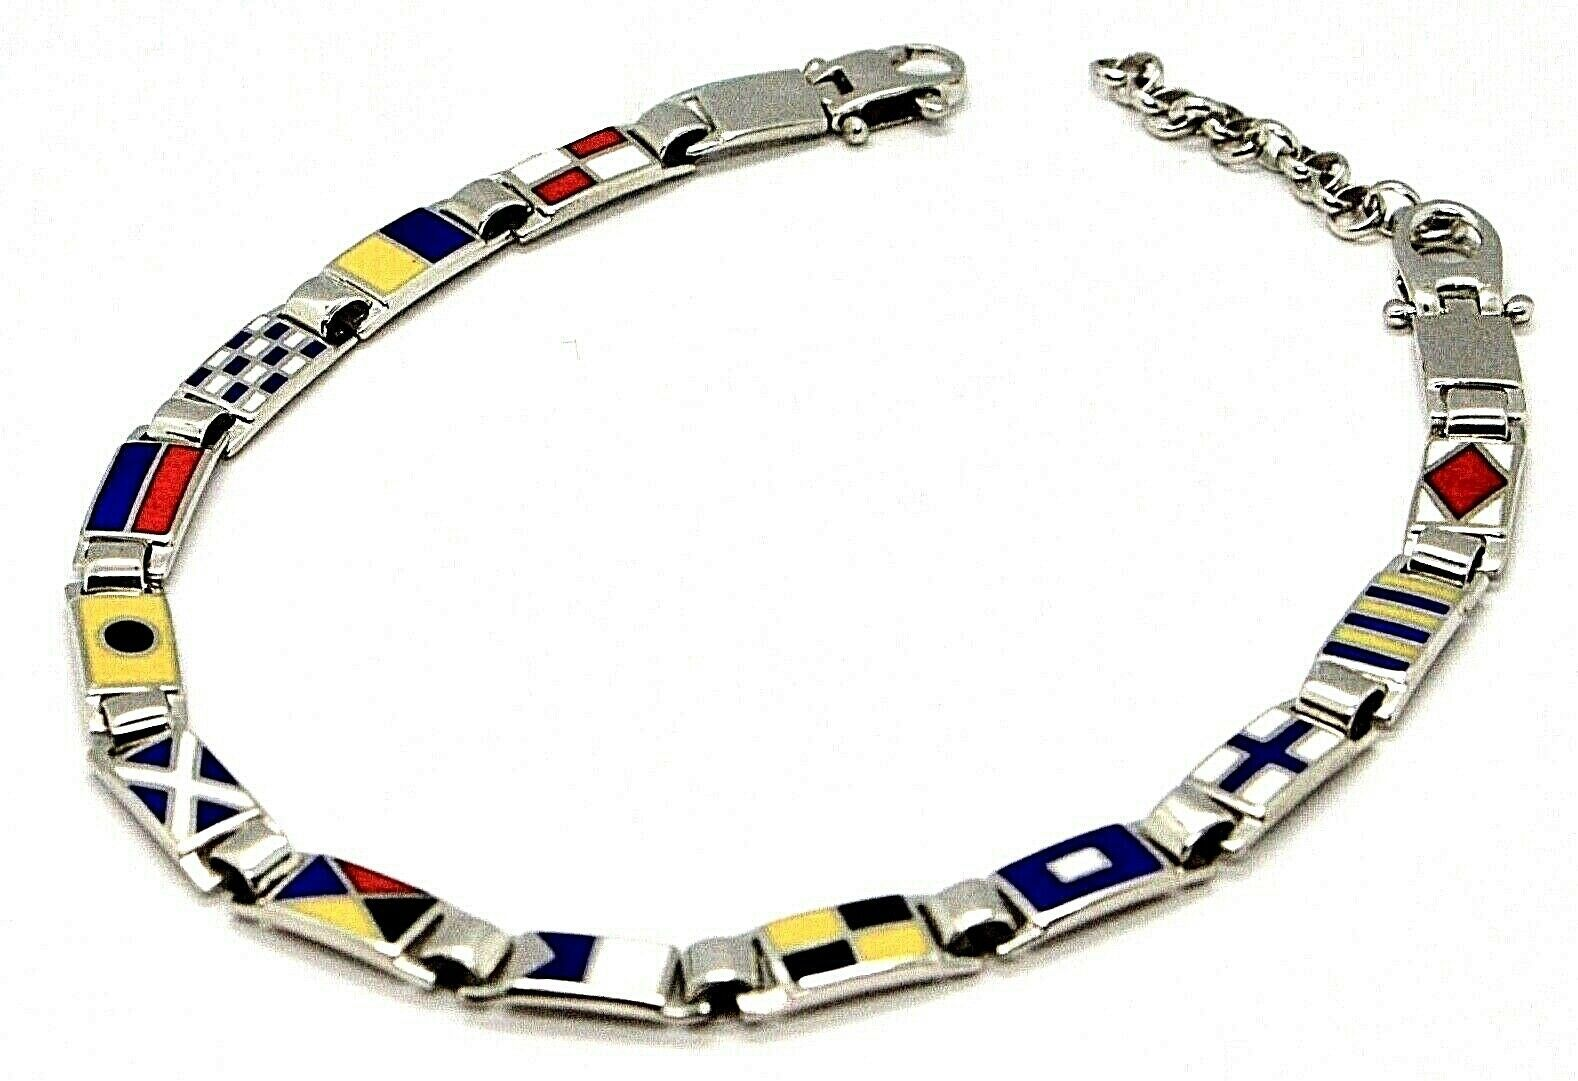 Bracelet Silver 925, Flags Nautical Glazed Tiles, Long 20 cm, Thickness 5 MM